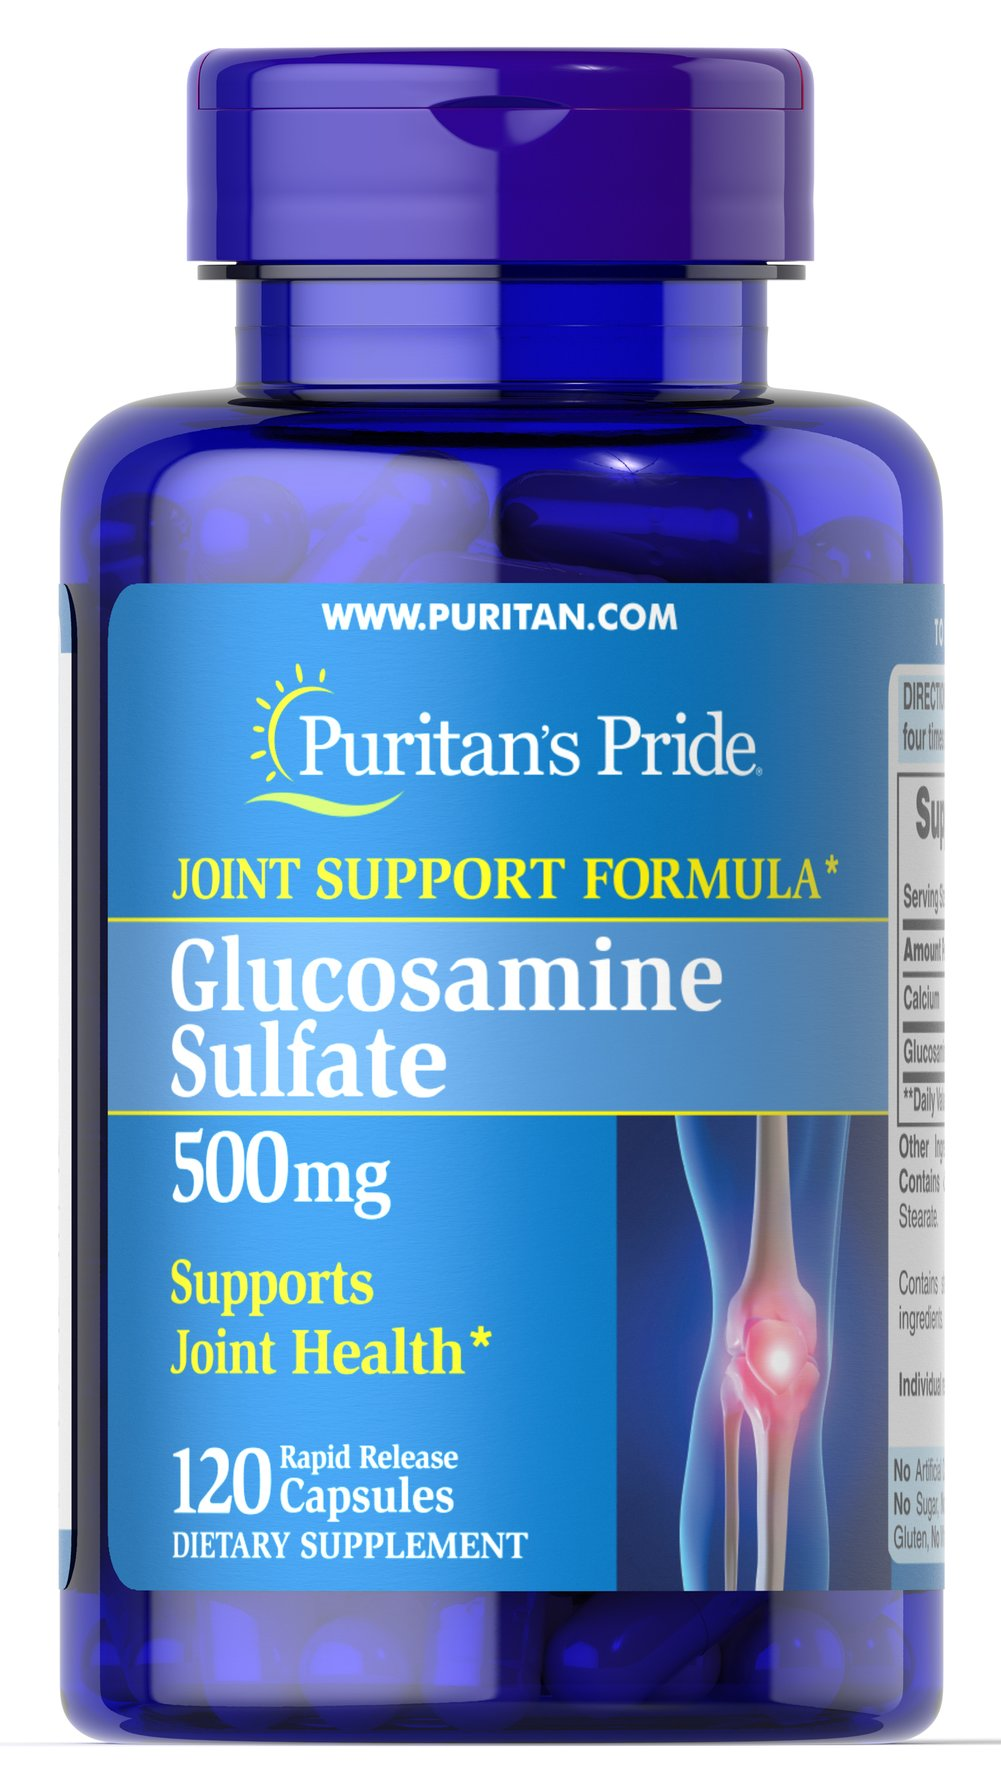 Glucosamine Sulfate 500 mg <p>Promotes Healthy Joints**</p><p>Supports Cartilage Maintenance**</p><p>As a key ingredient in cartilage, Glucosamine plays an important role in good joint health and helps promote healthy joints and cartilage maintenance.** Studies indicate that Glucosamine provides the building blocks for constructing cartilage.** Our Glucosamine Sulfate capsules are perfect for anyone desiring extra nutritional support for cartilage and joints.**</